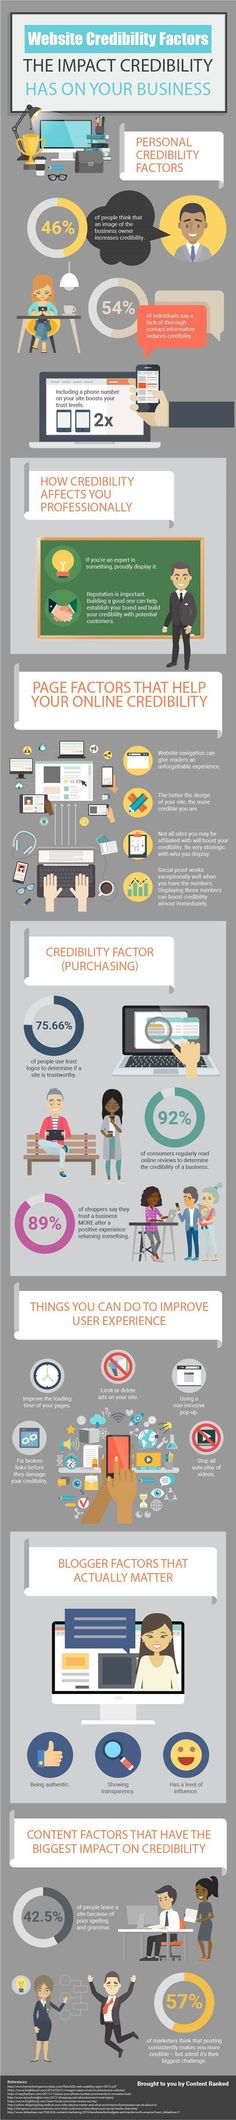 The Incredible Credible Website: How Credibility Boosts Your Business [Infographic]